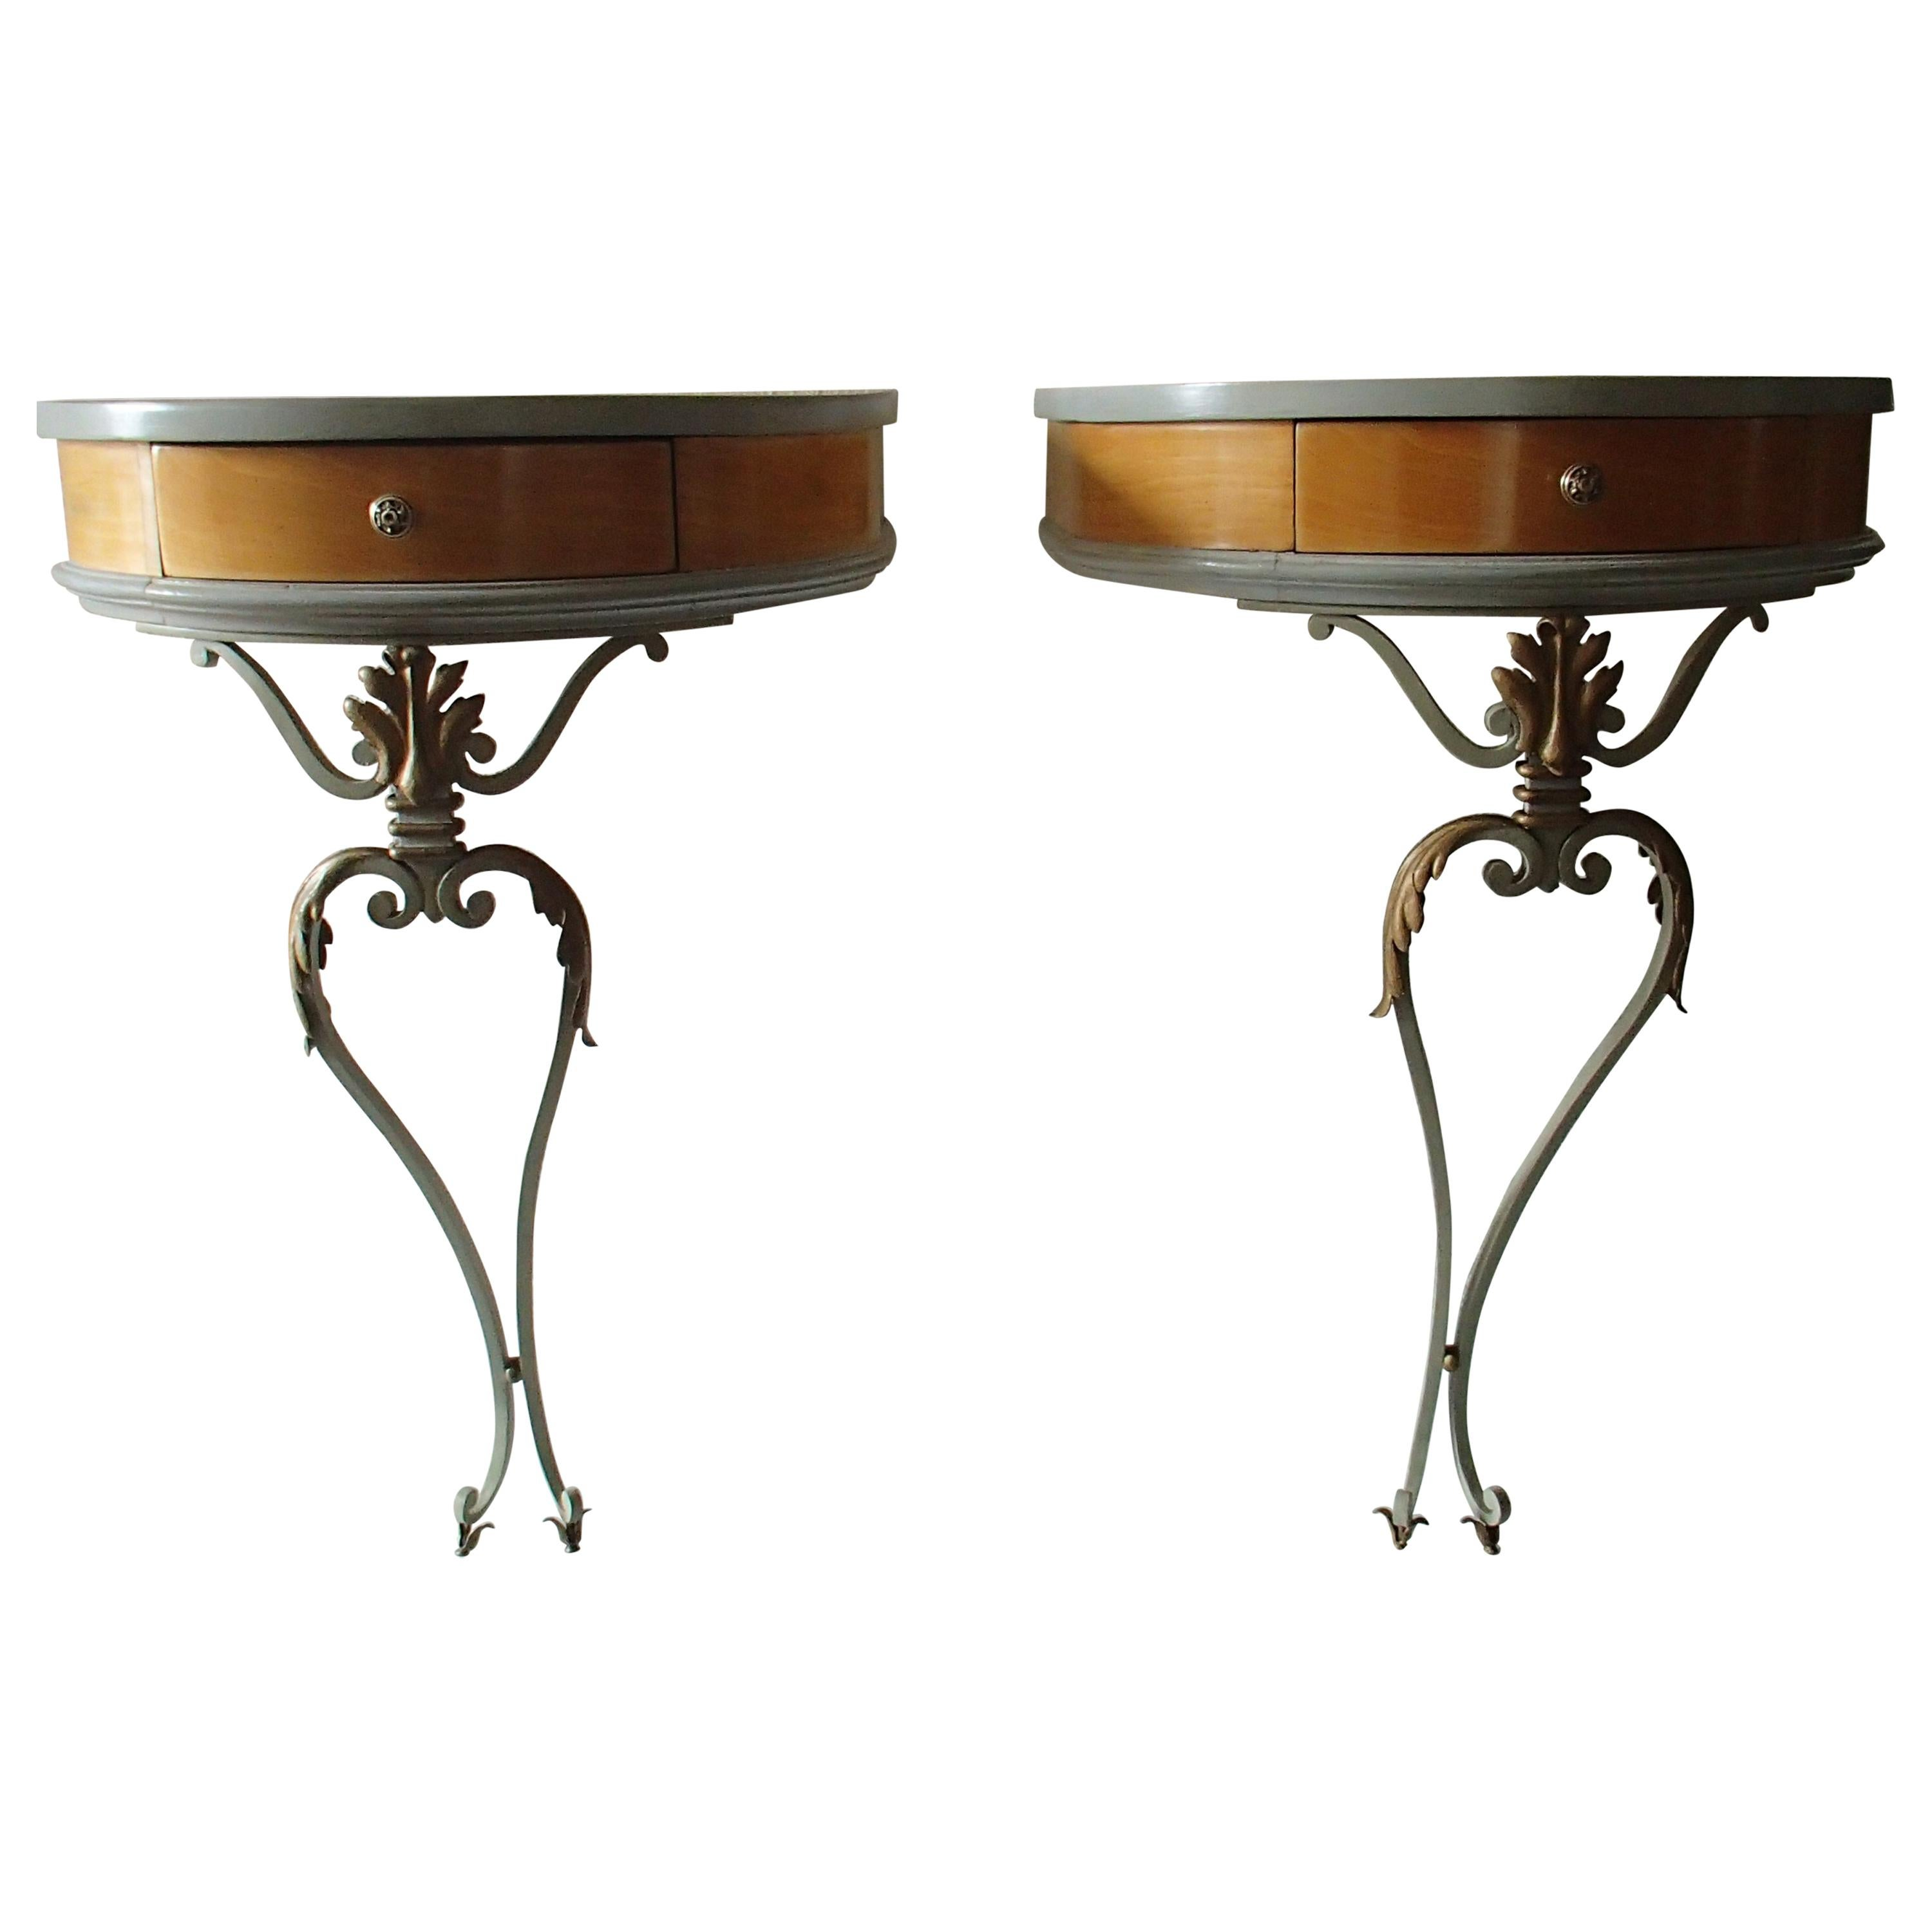 Pair of Art Deco Nightstands or Side Tables Sycomore and Wrought Iron